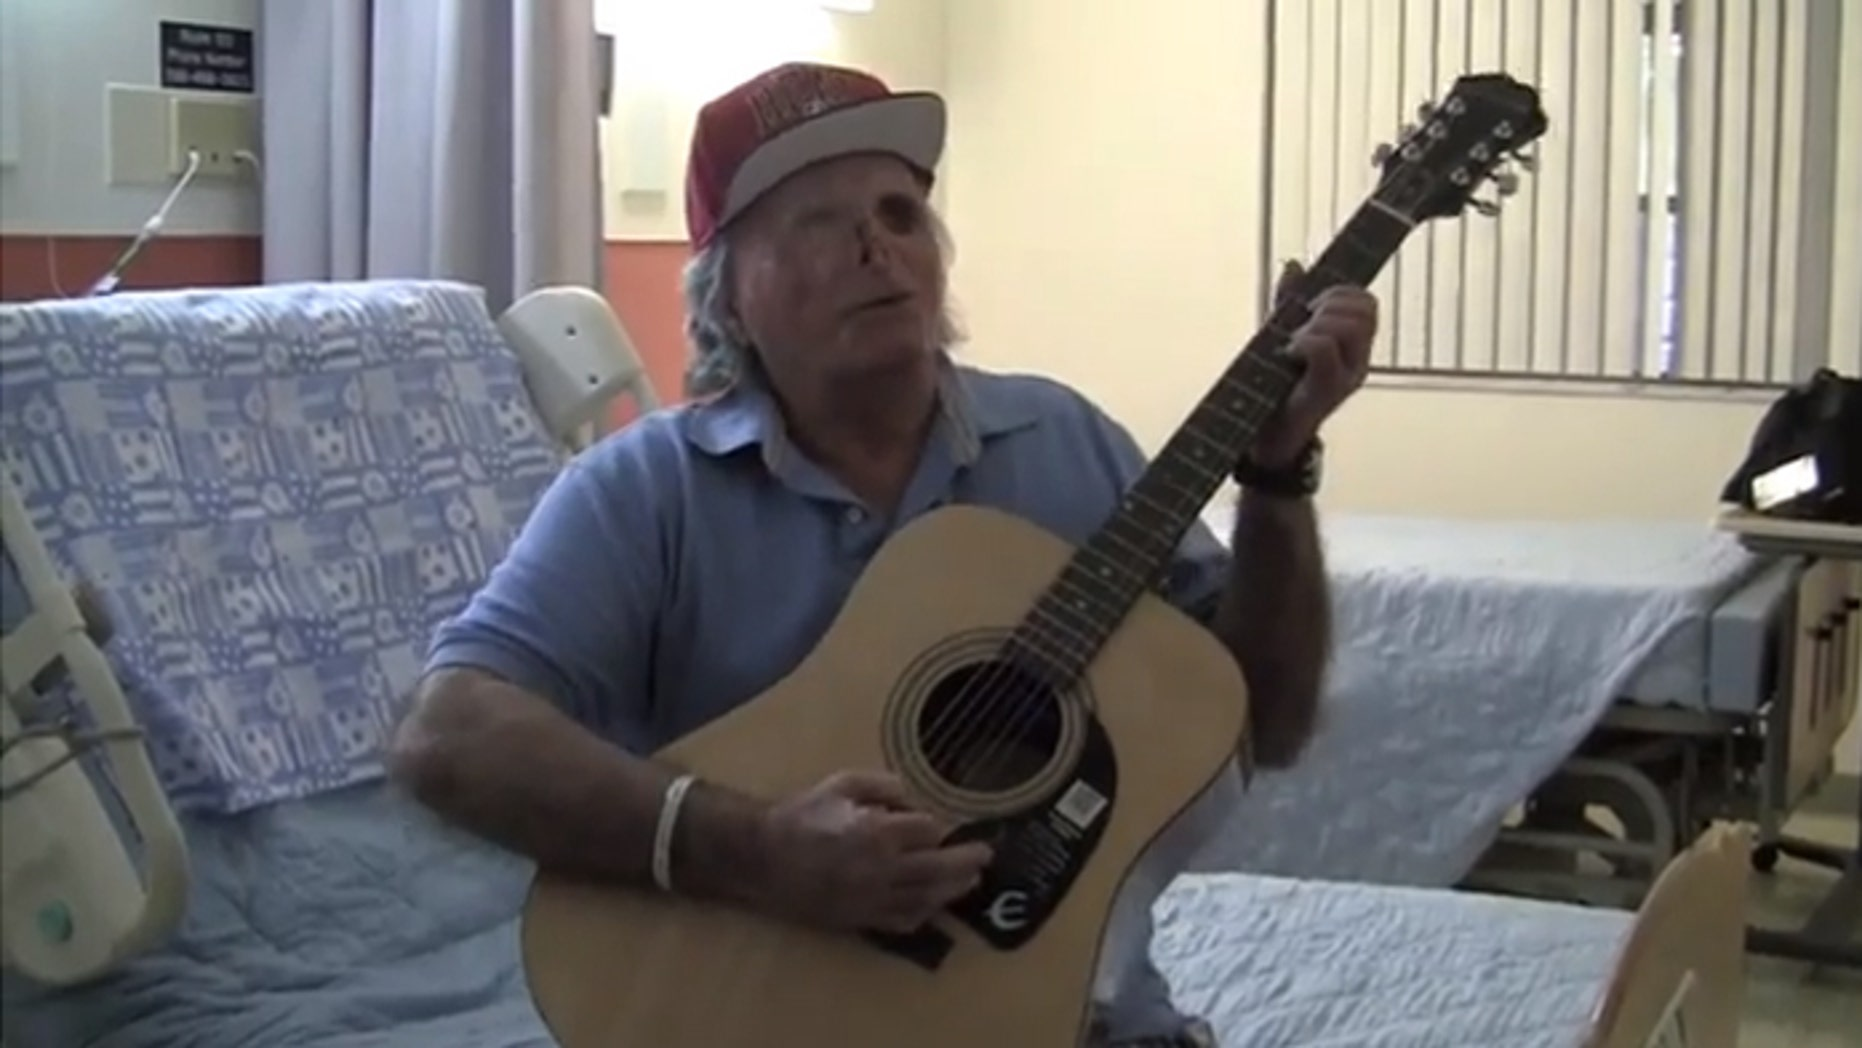 Ronald Poppo expresses gratitude to his supporters in a new YouTube video.